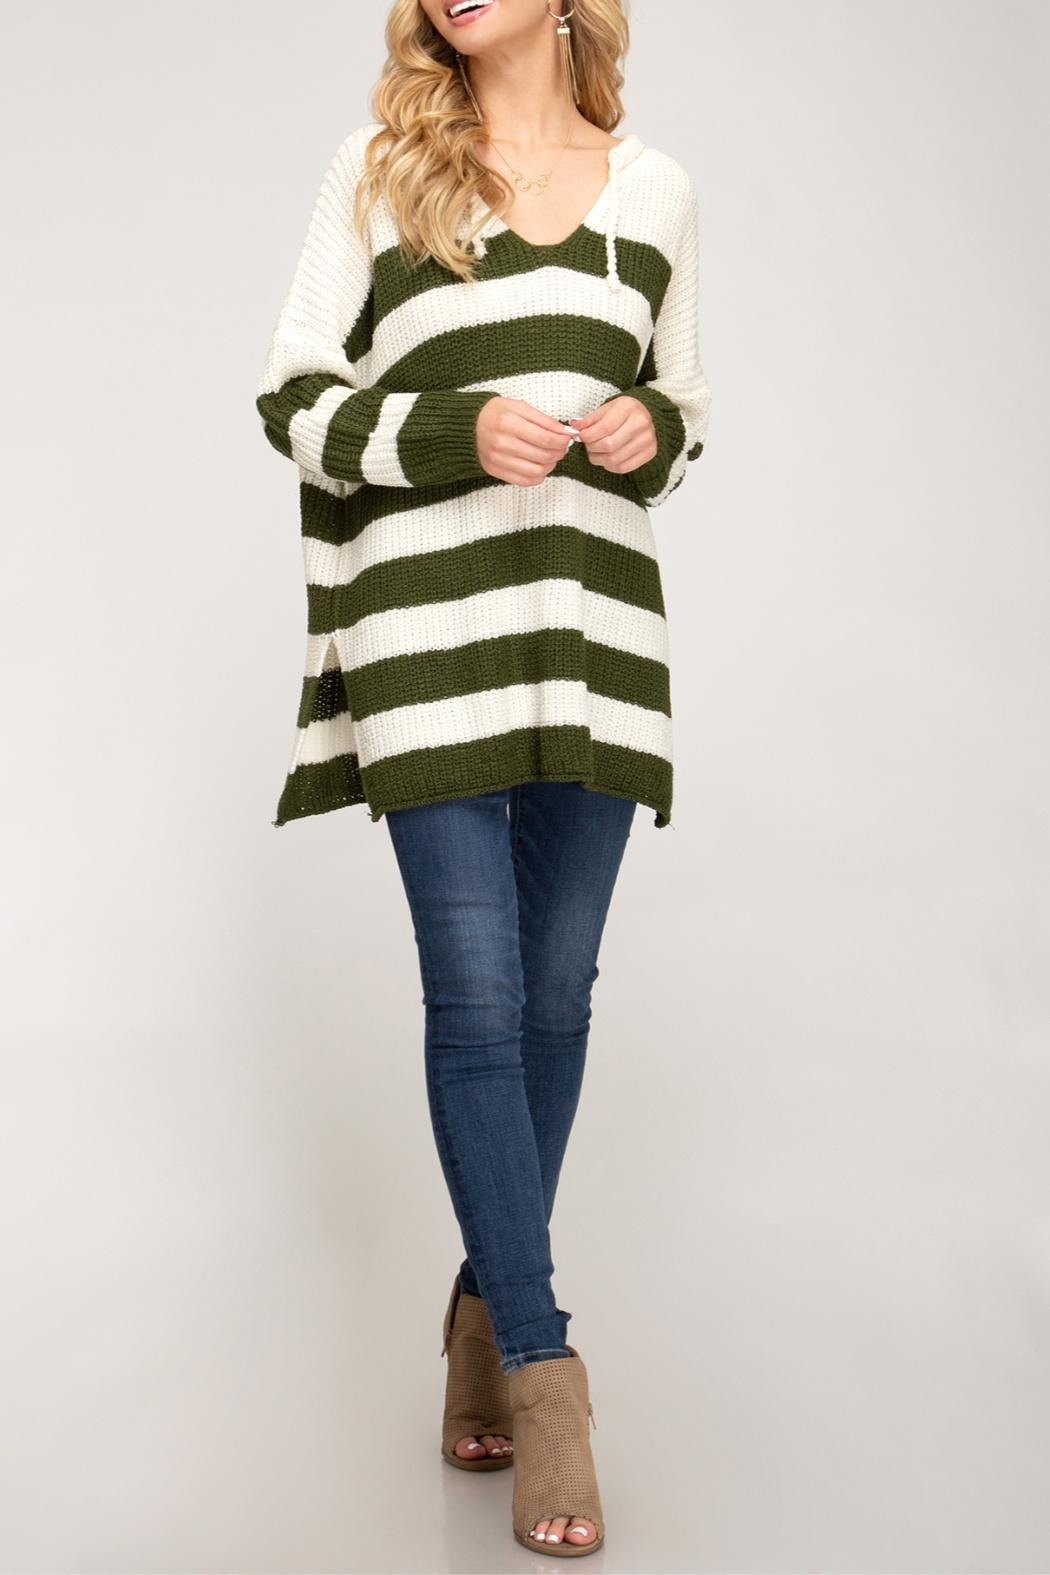 She + Sky Striped Pullover Sweater - Main Image